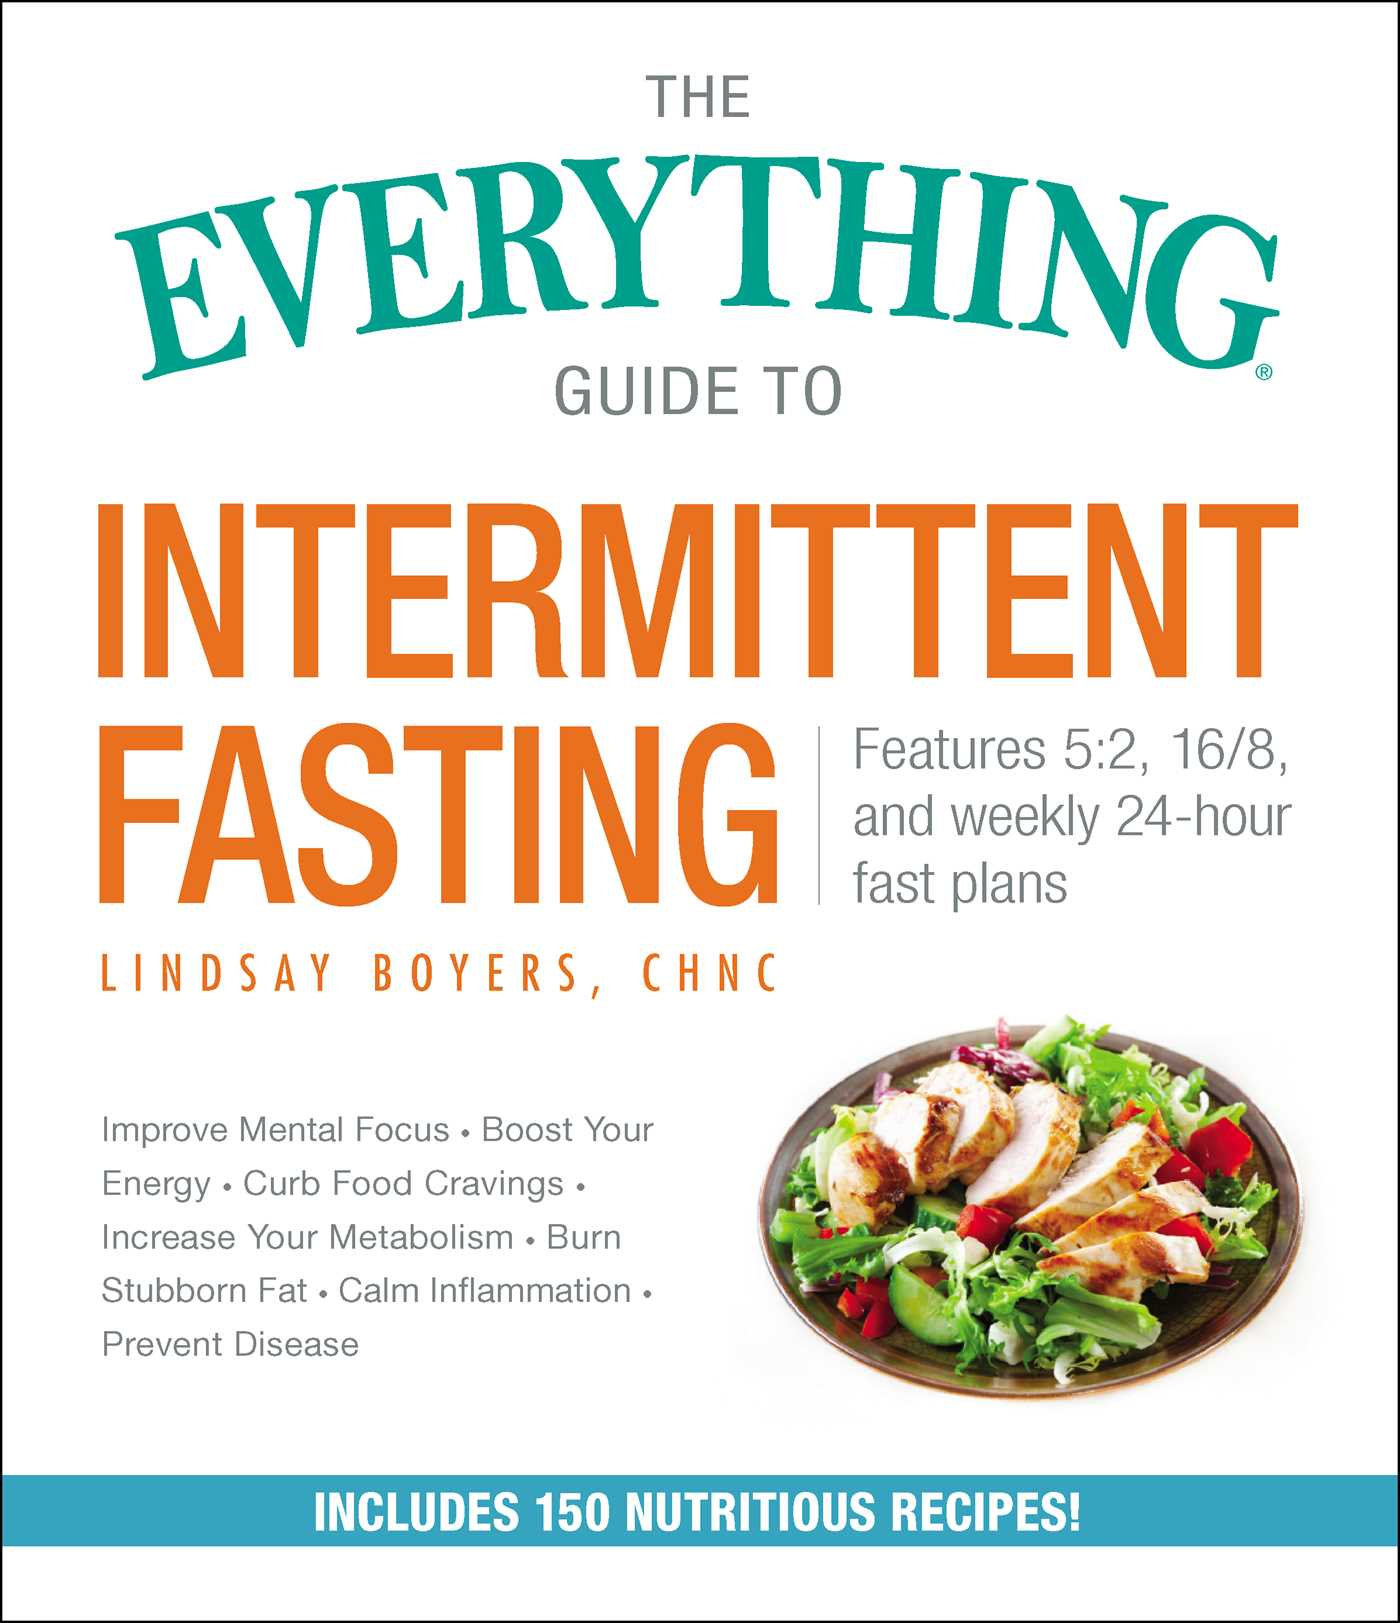 Book Cover Image Jpg The Everything Guide To Intermittent Fasting